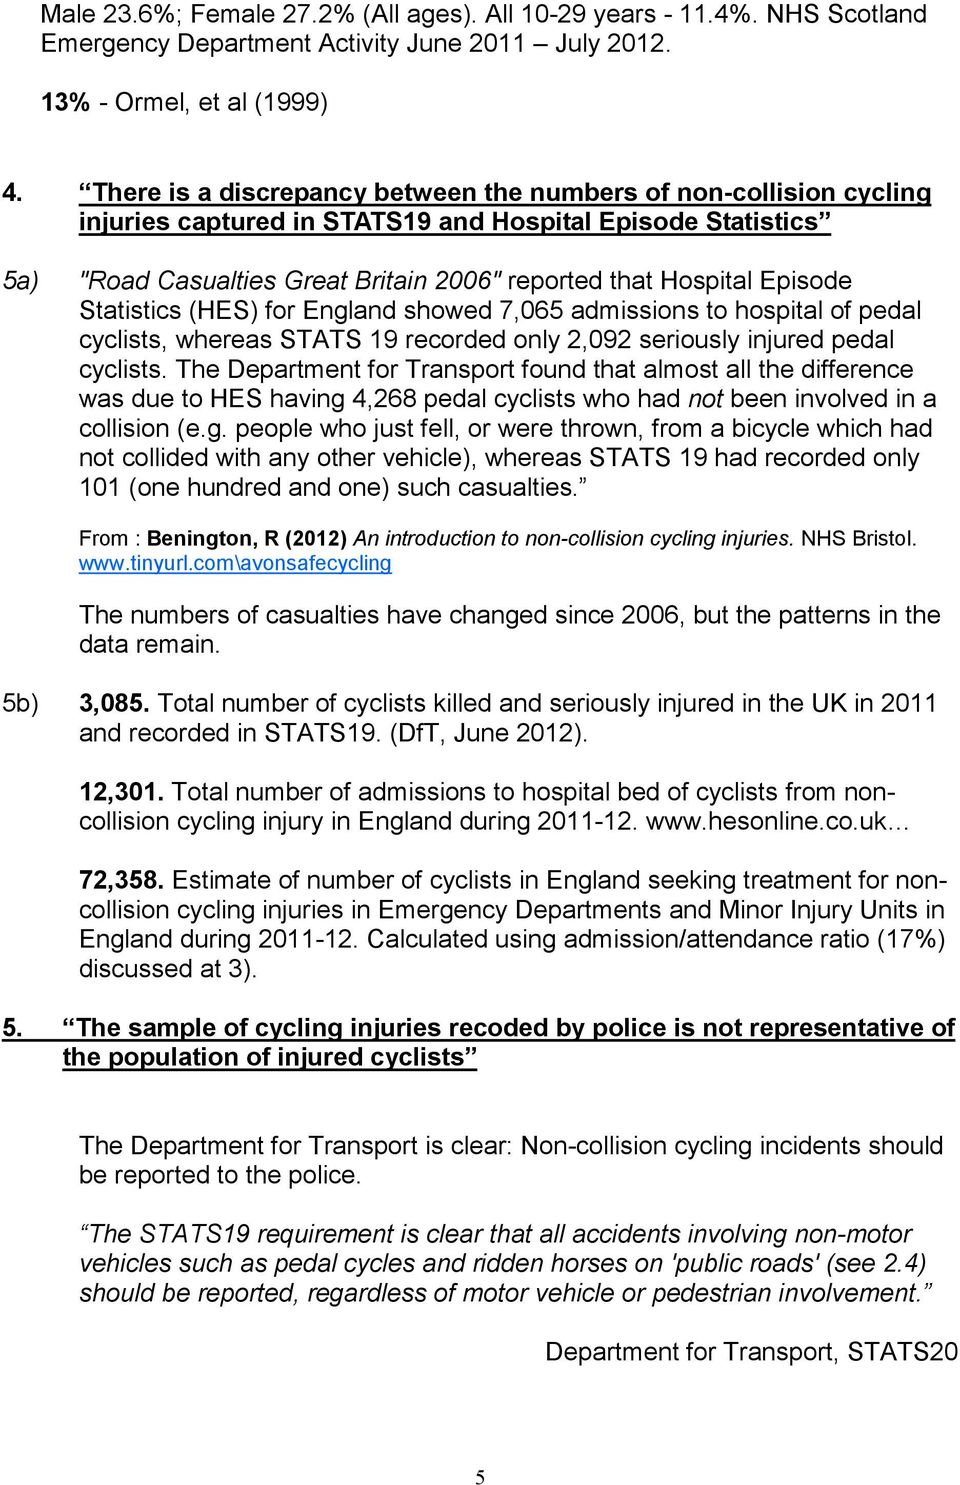 Episode Statistics (HES) for England showed 7,065 admissions to hospital of pedal cyclists, whereas STATS 19 recorded only 2,092 seriously injured pedal cyclists.